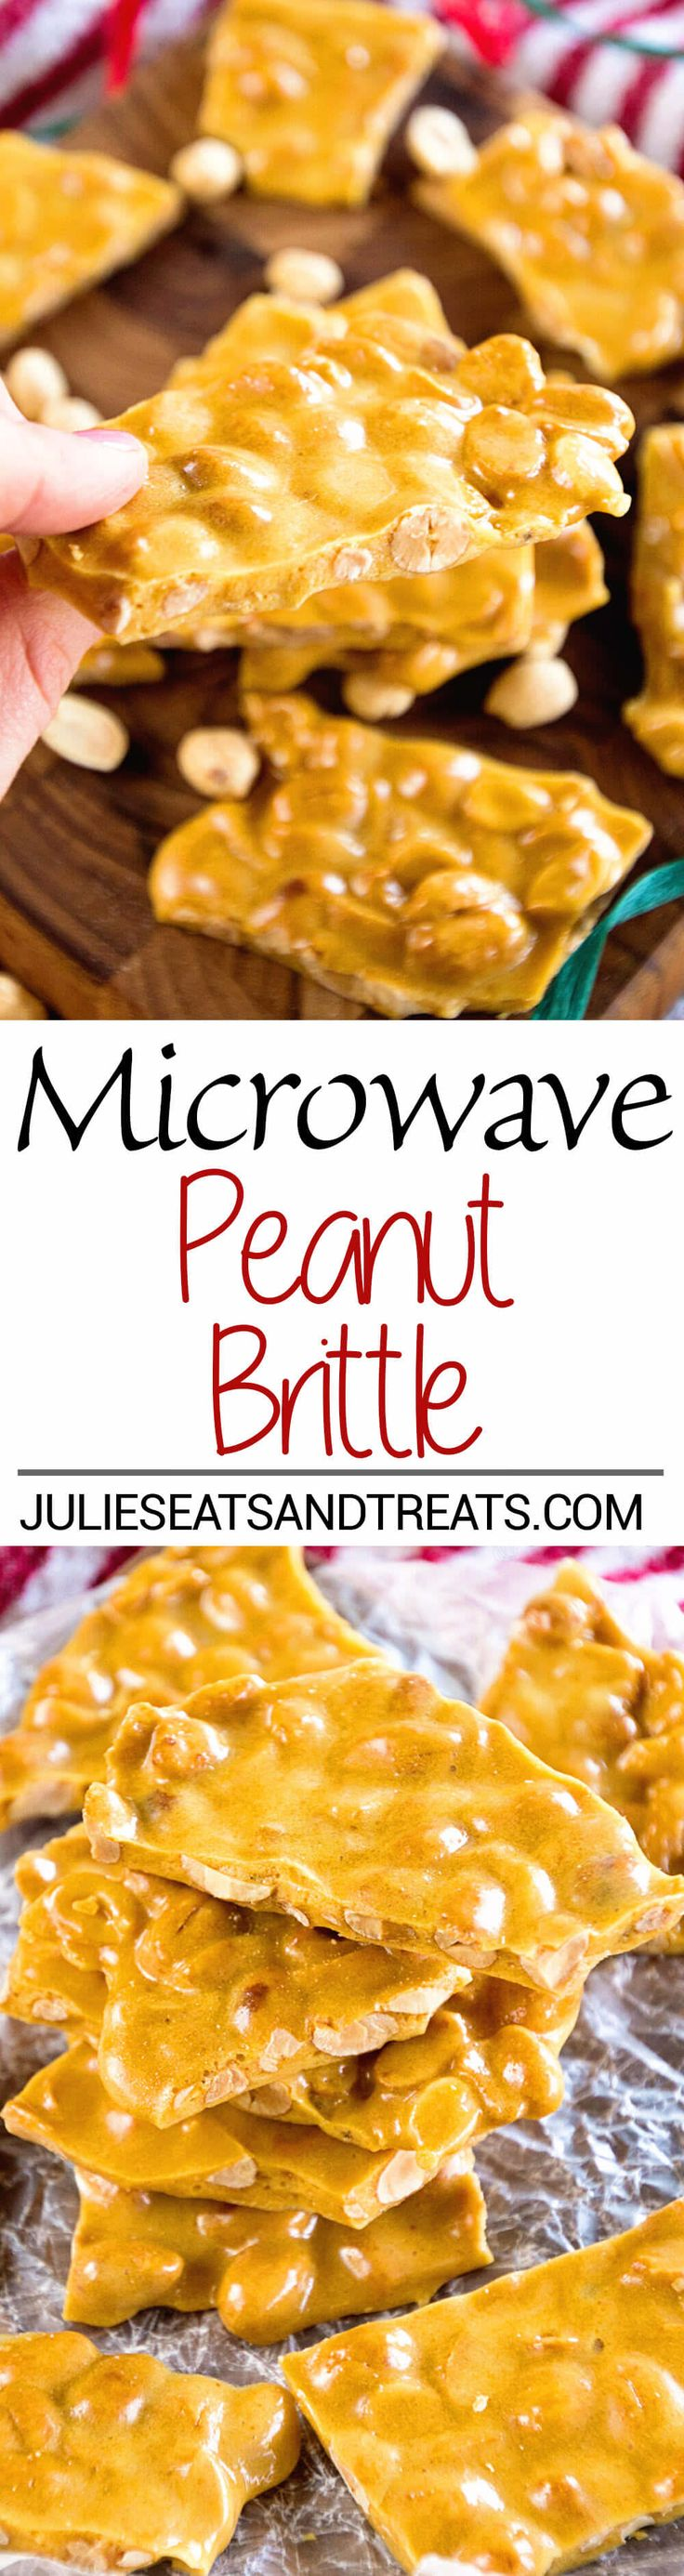 Microwave Peanut Brittle Recipe ~ Quick and Easy Christmas Treat that's Made in your Microwave! This Sweet is perfect for Goodie Trays! ~ http://www.julieseatsandtreats.com